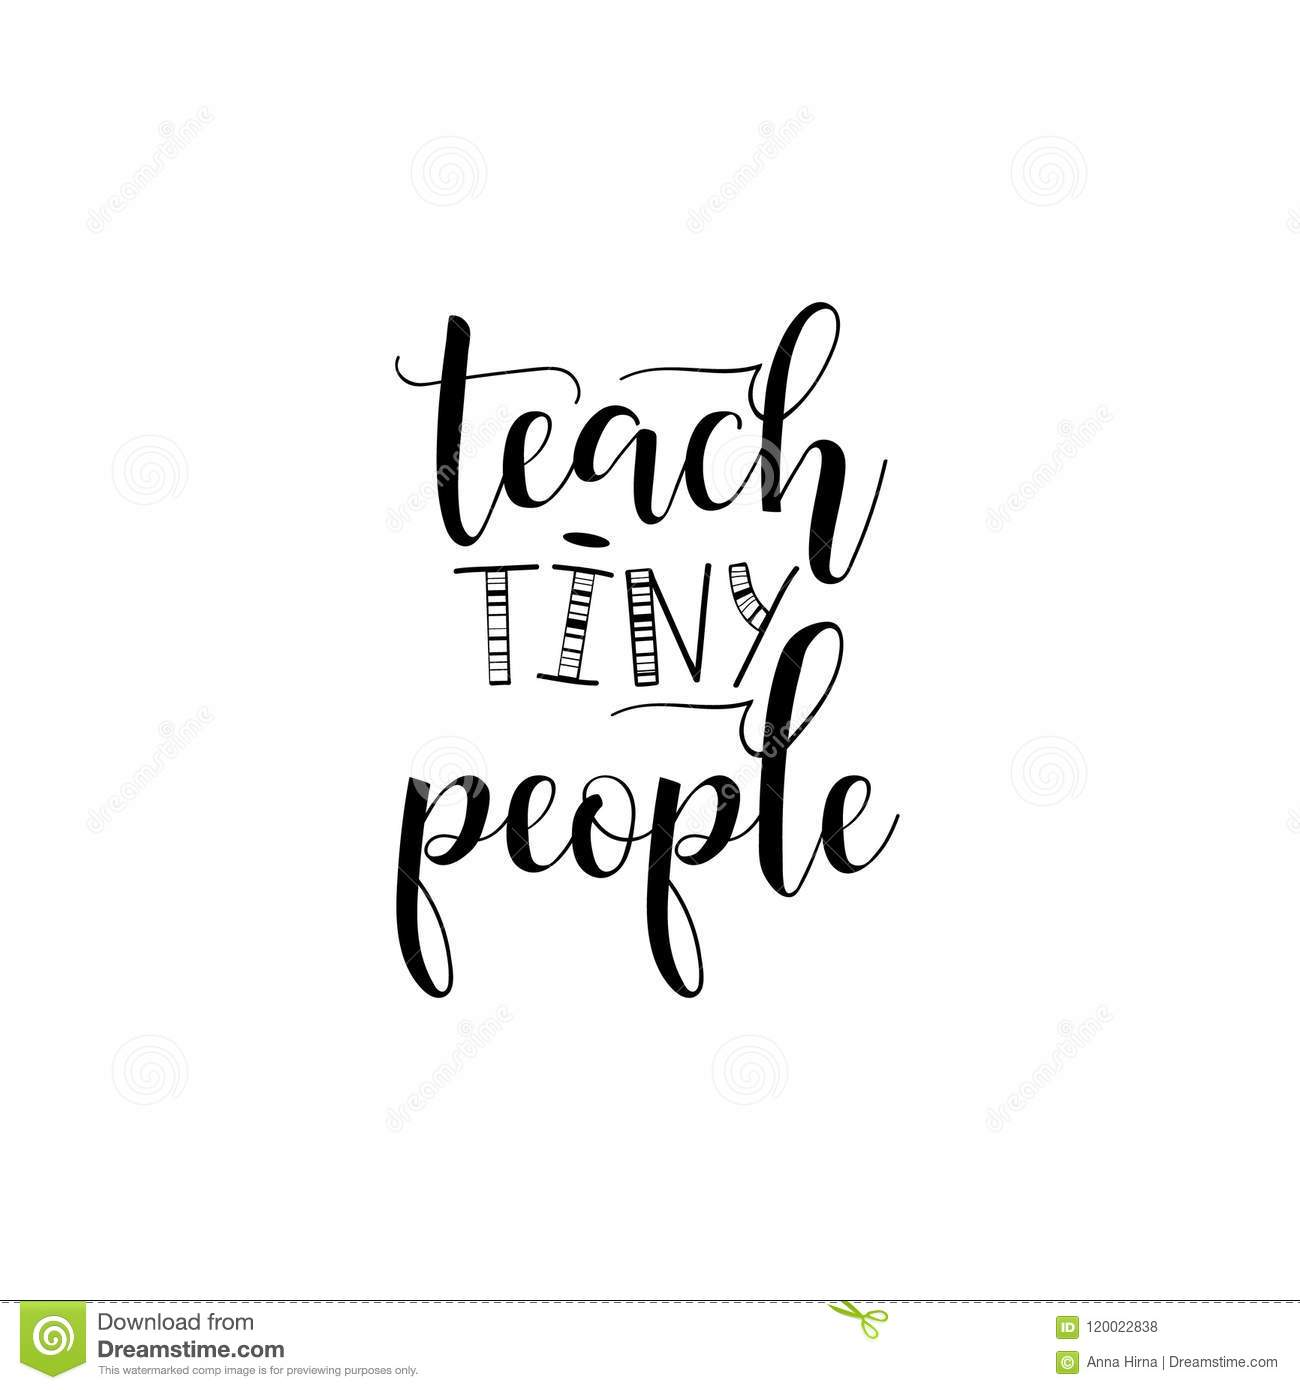 Teach tiny people teachers day hand lettering stock illustration teach tiny people teachers day hand lettering for greeting cards posters t shirt and other vector illustration m4hsunfo